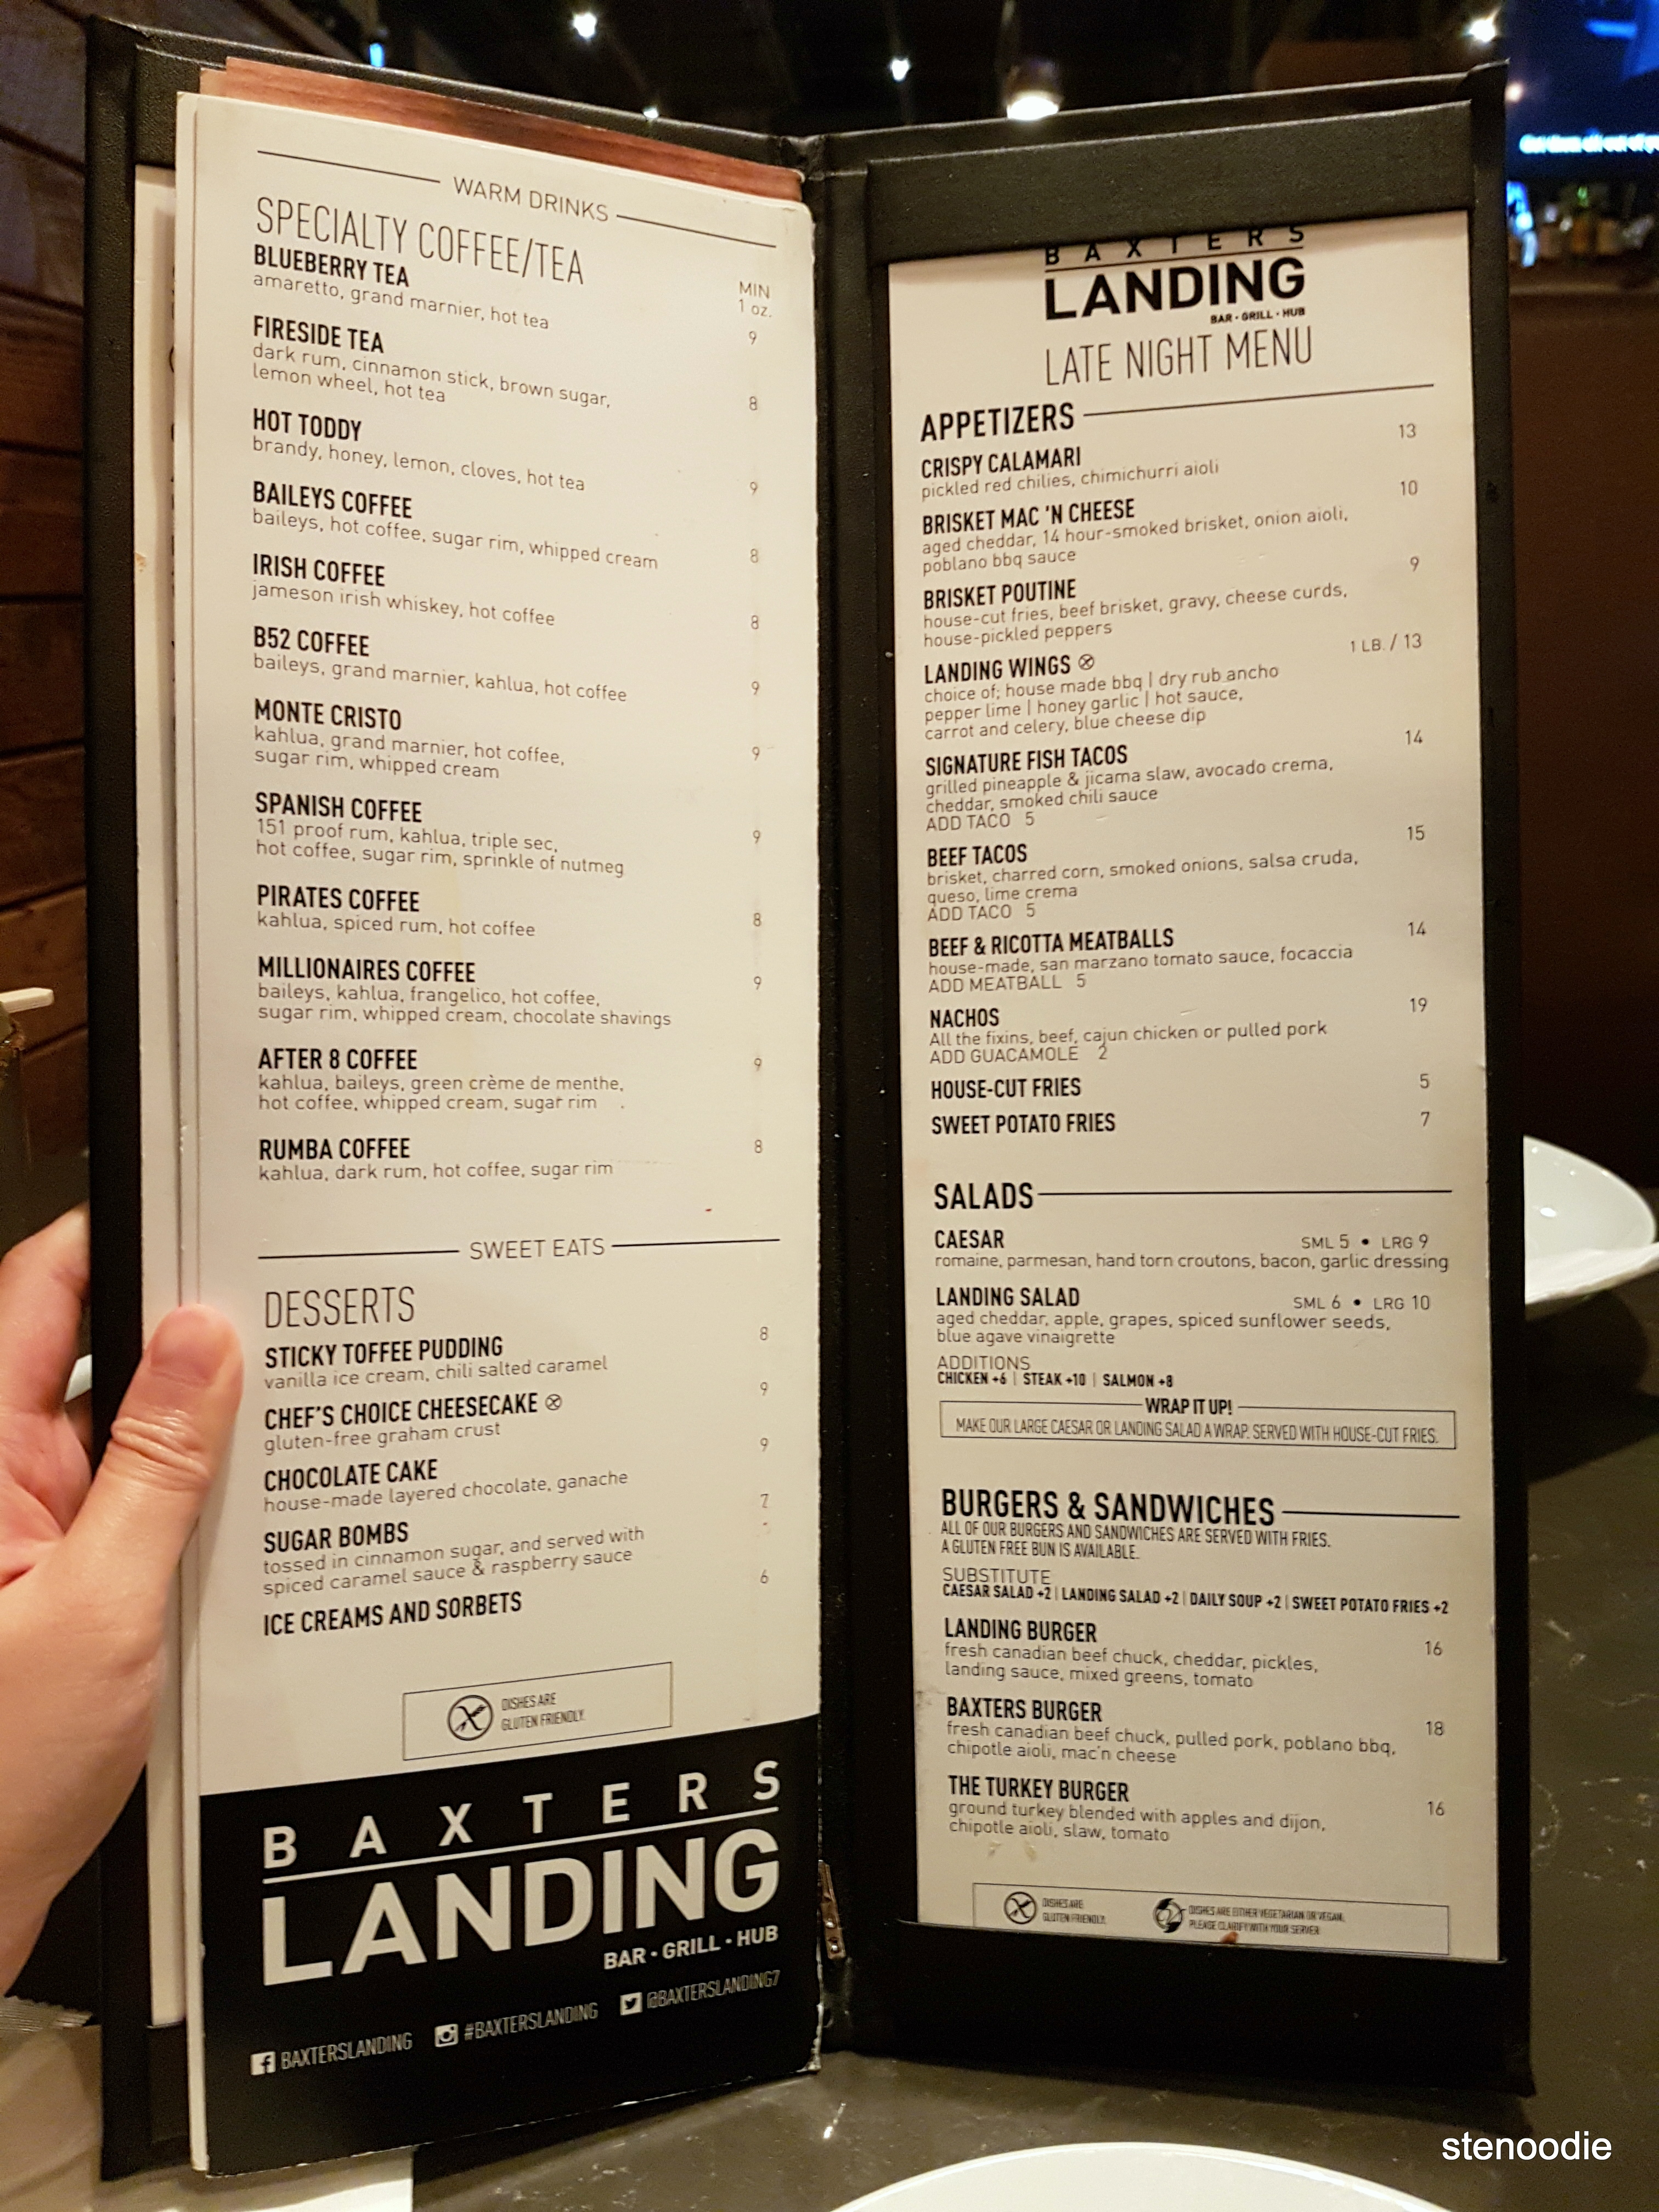 Baxters Landing dessert and late night menu